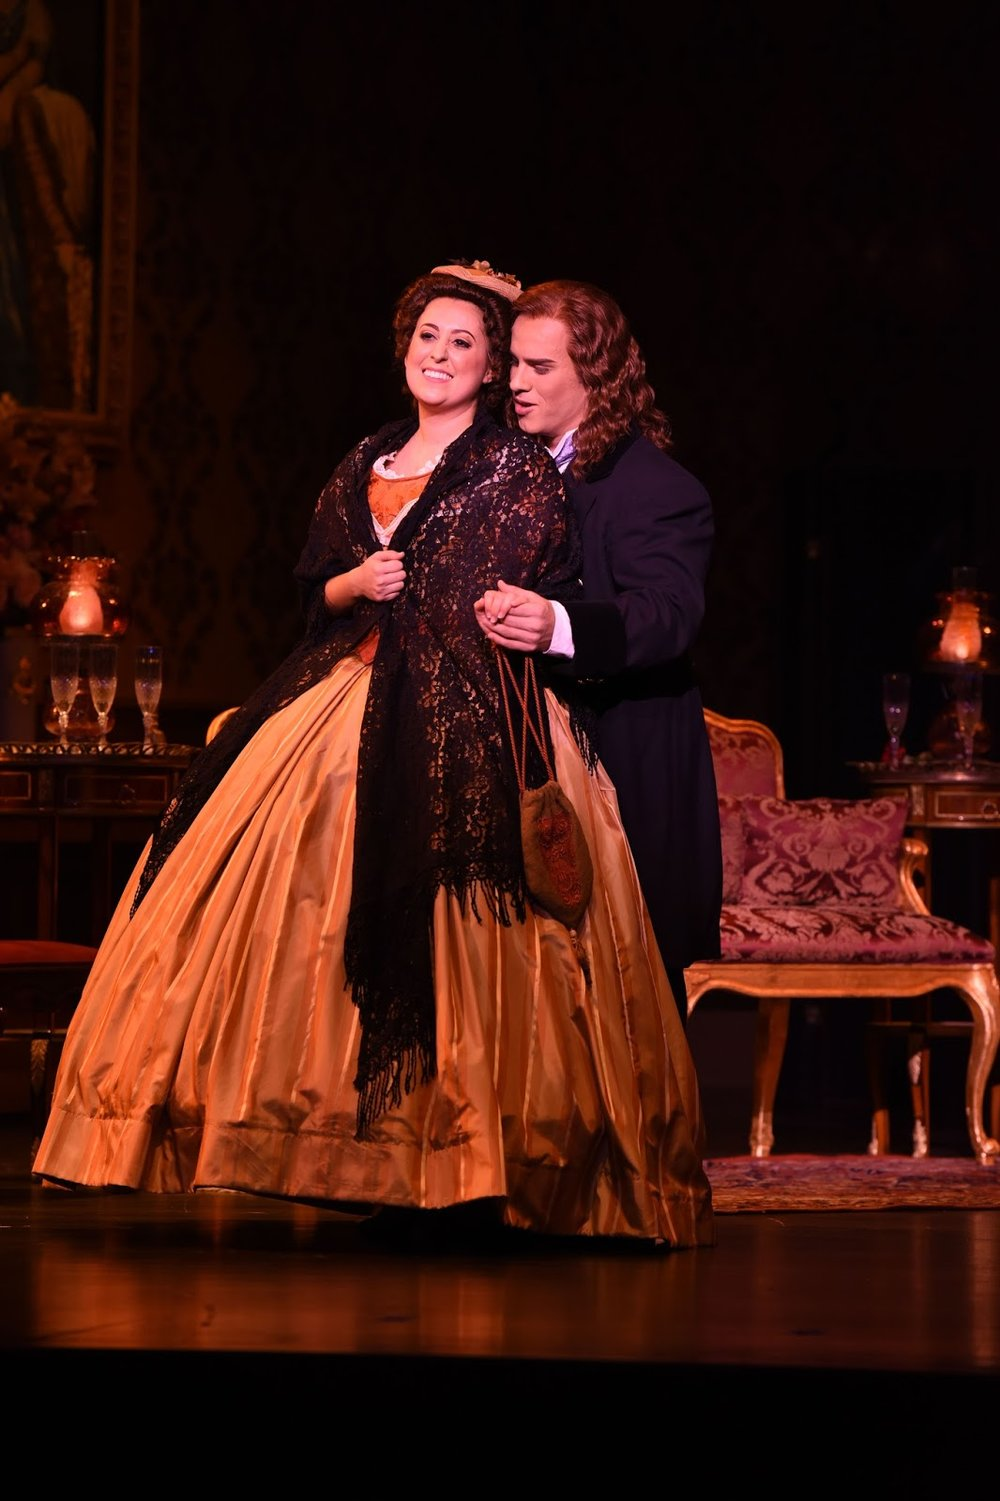 La rondine - Opera San Jose  Elena Galván (Lisette) and Mason Gates (Prunier)in  La   rondine    with Opera San Jose.  Photo credit: Pat Kirk